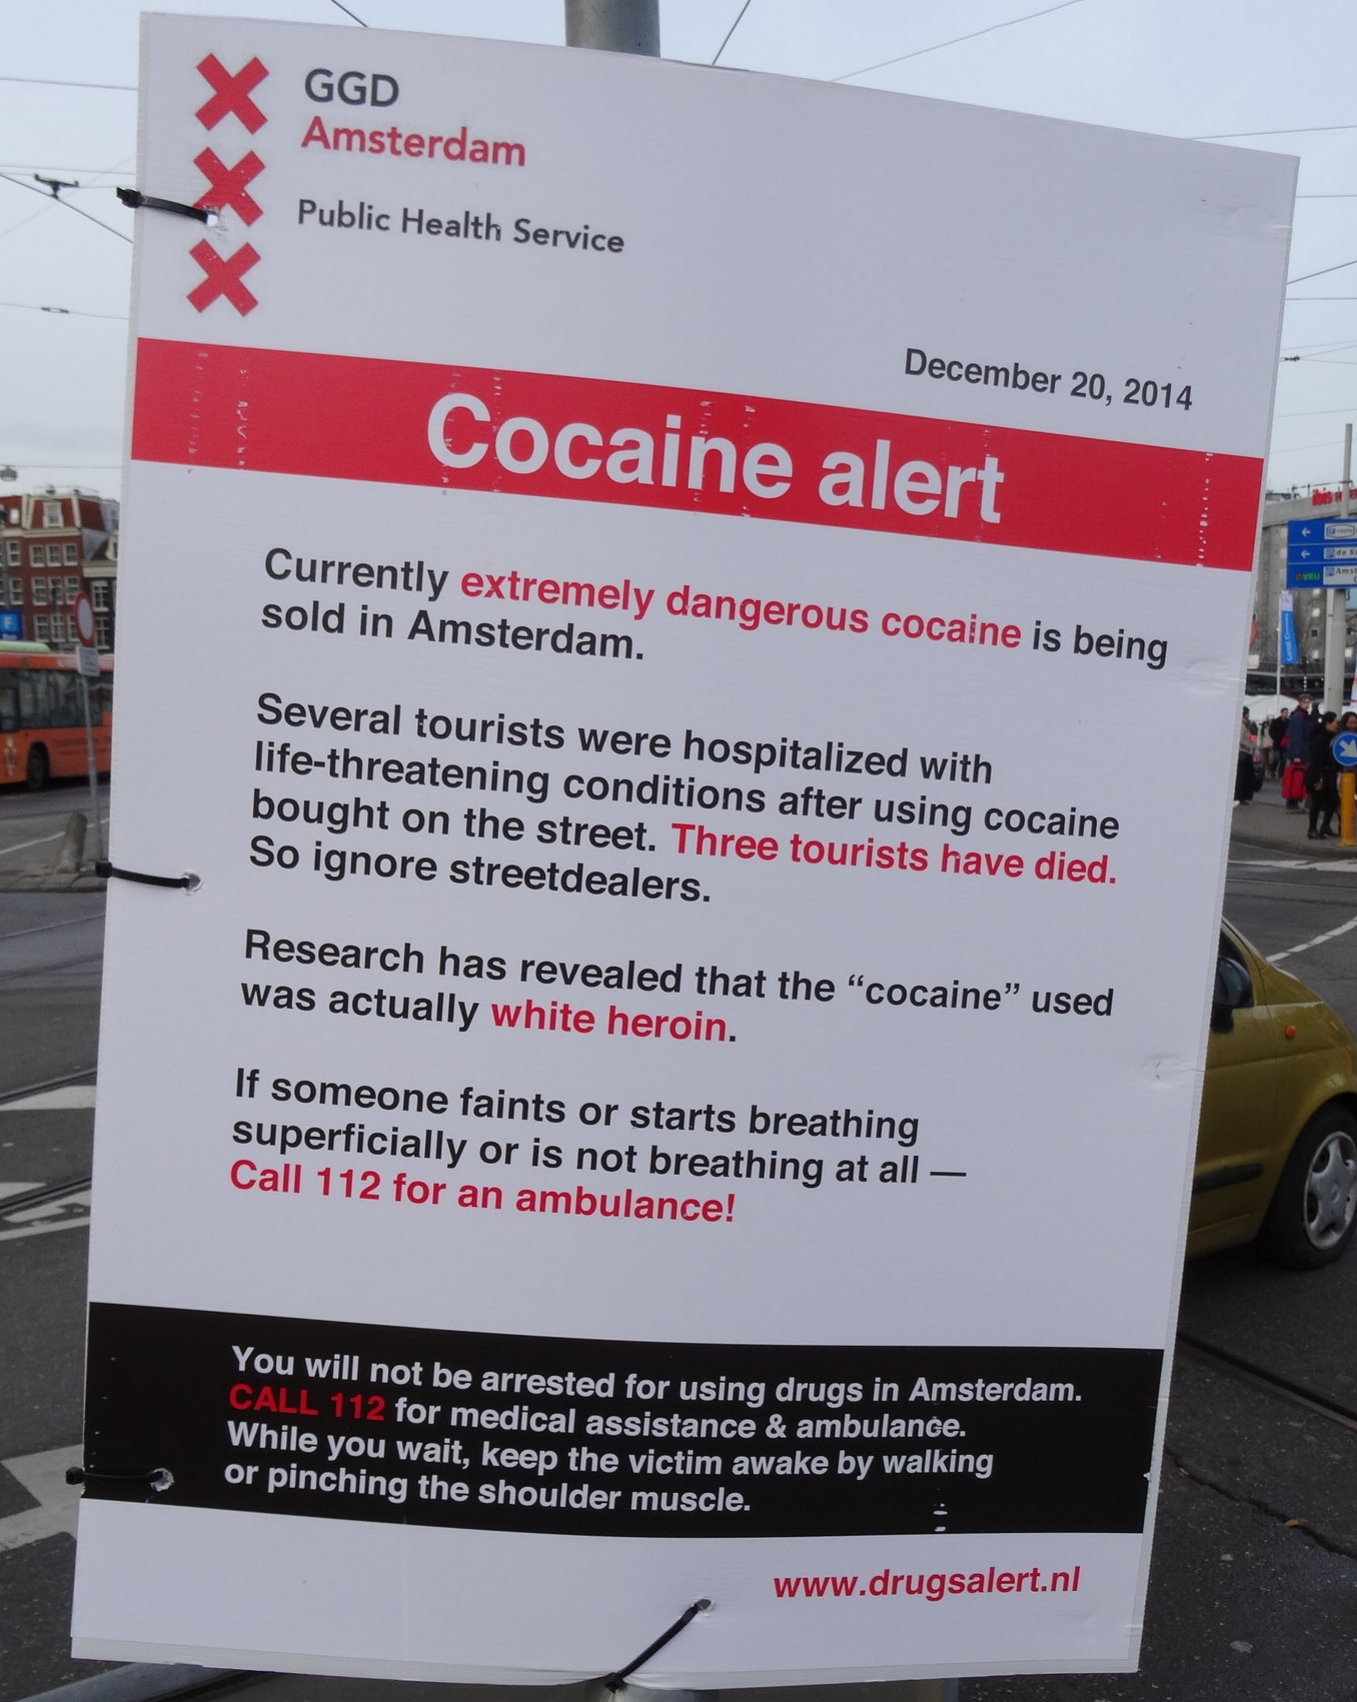 In 2014 people died after snorting a white powder that they believed to be cocaine. The municipal government put up signs warning people of it.